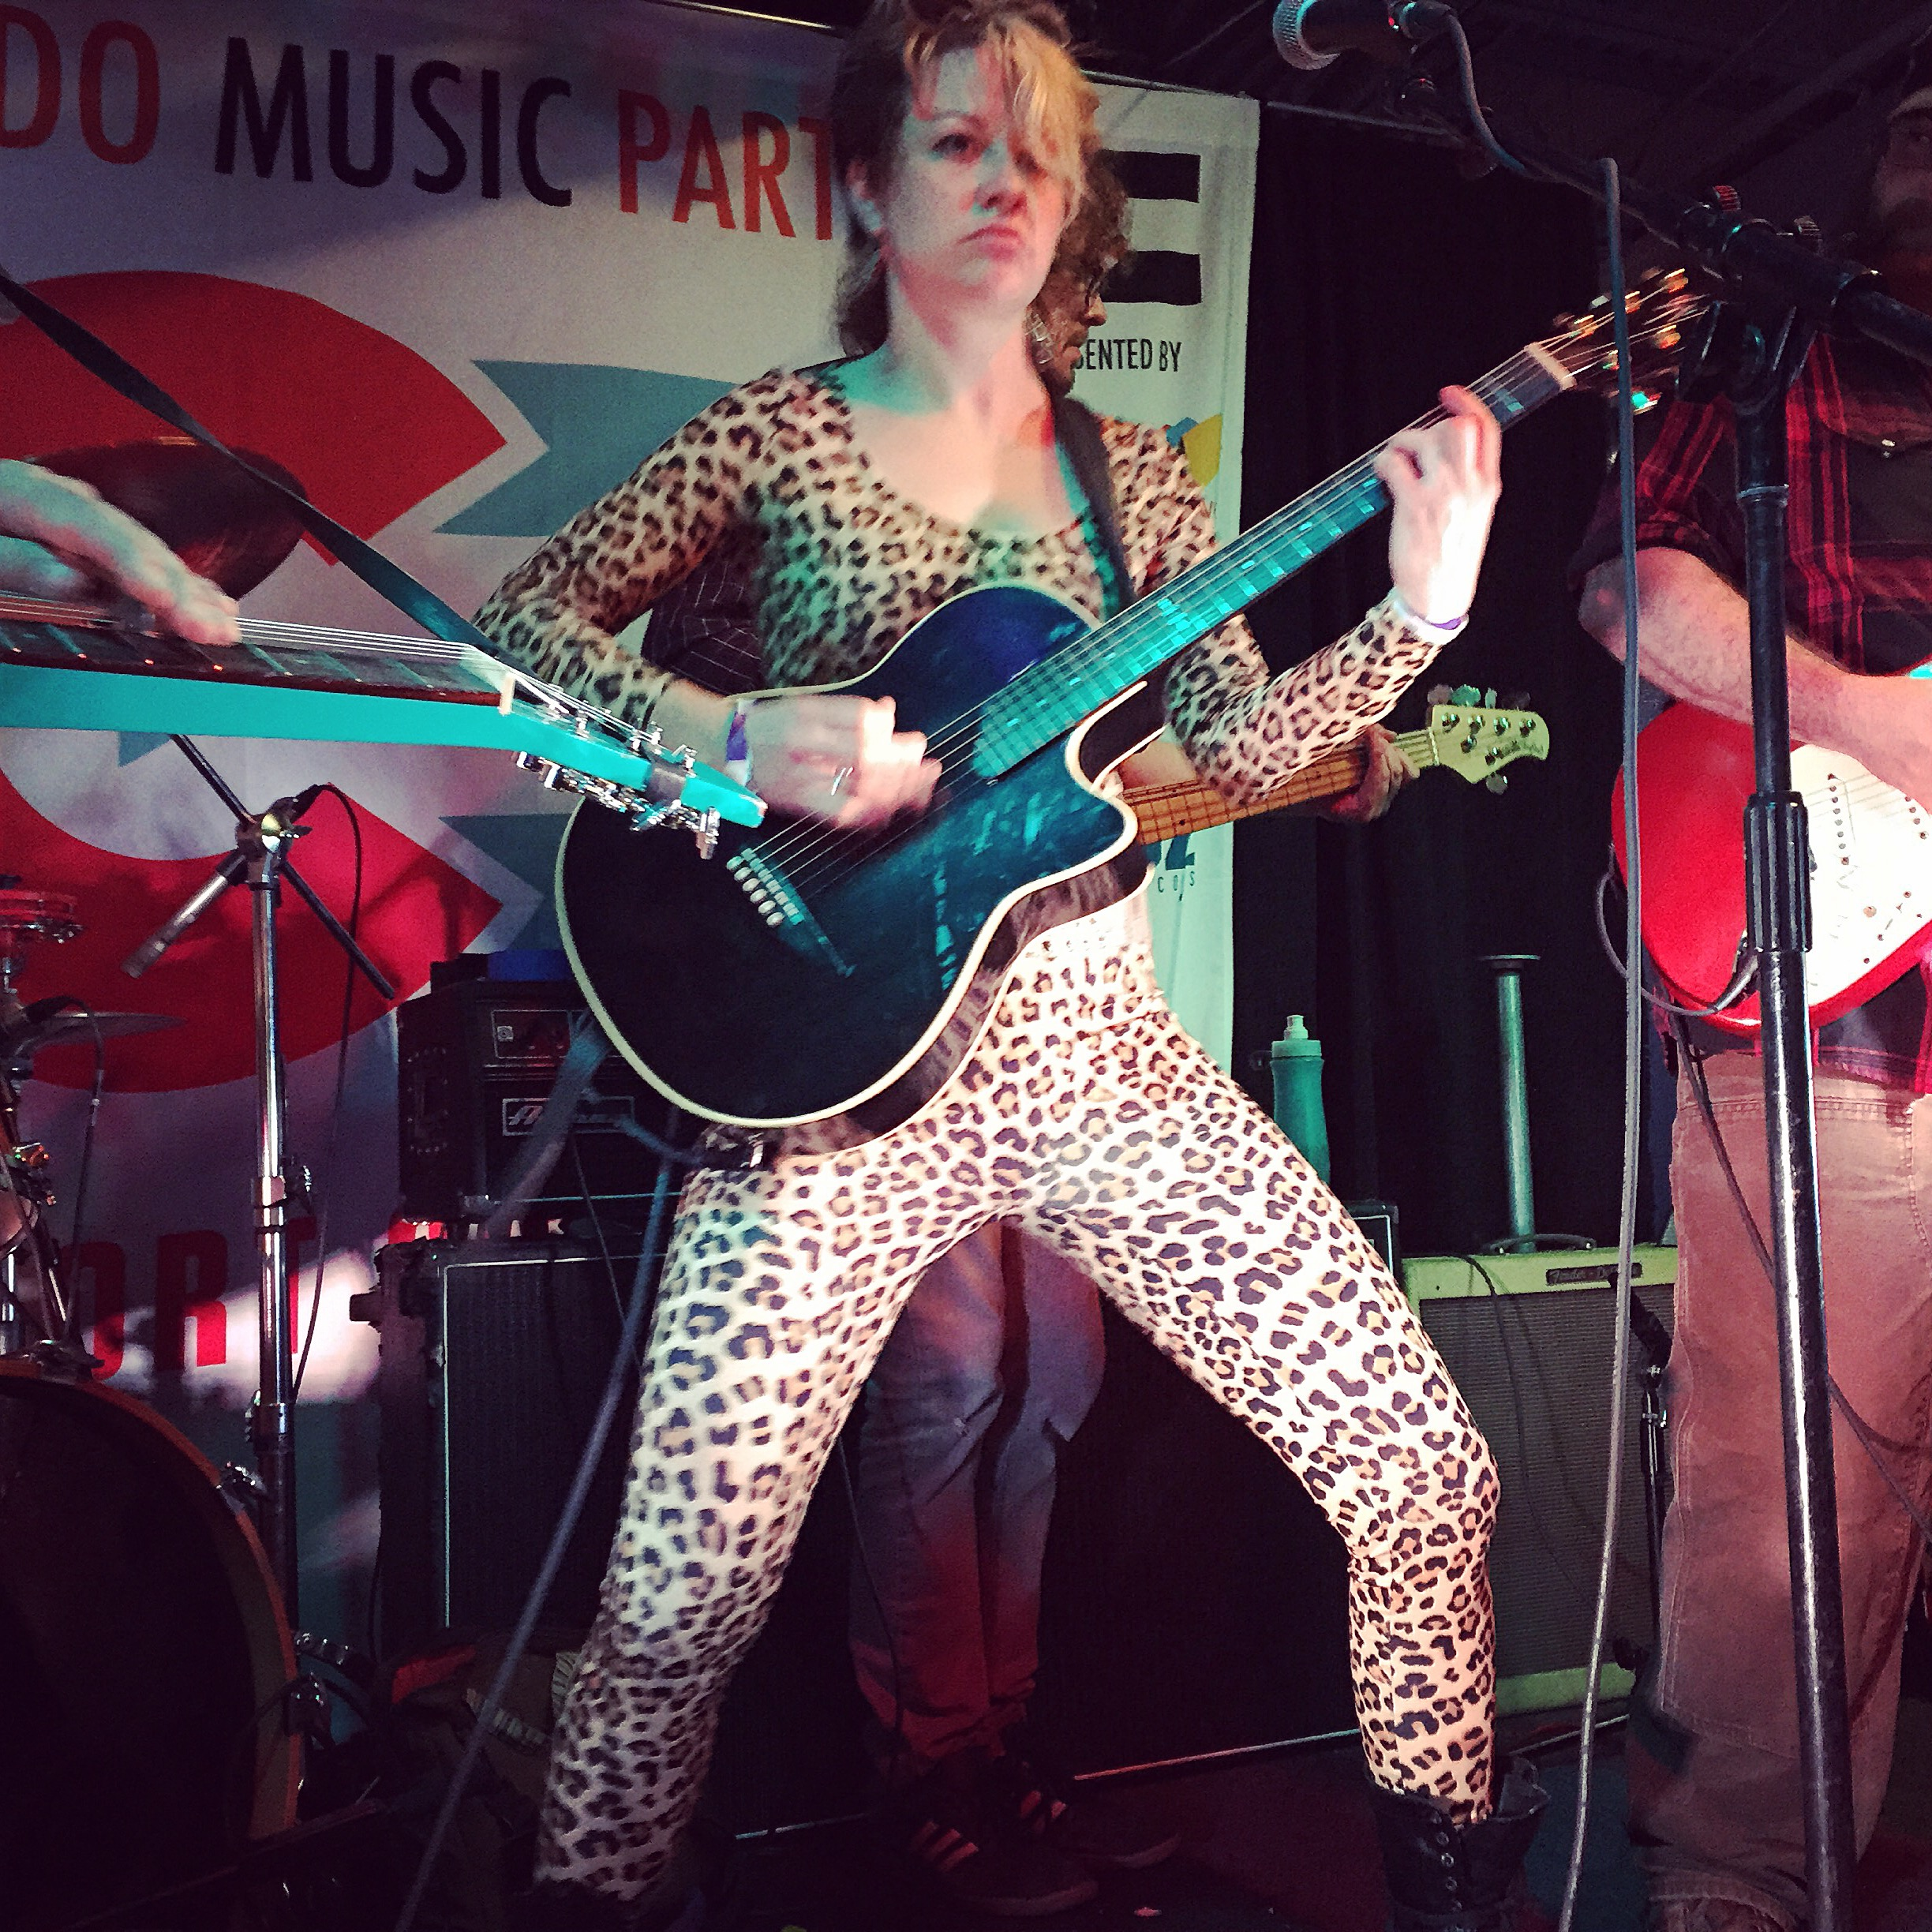 The Patti Fiasco performed at Colorado Music Party during SXSW 2015. Photo by Quentin Young